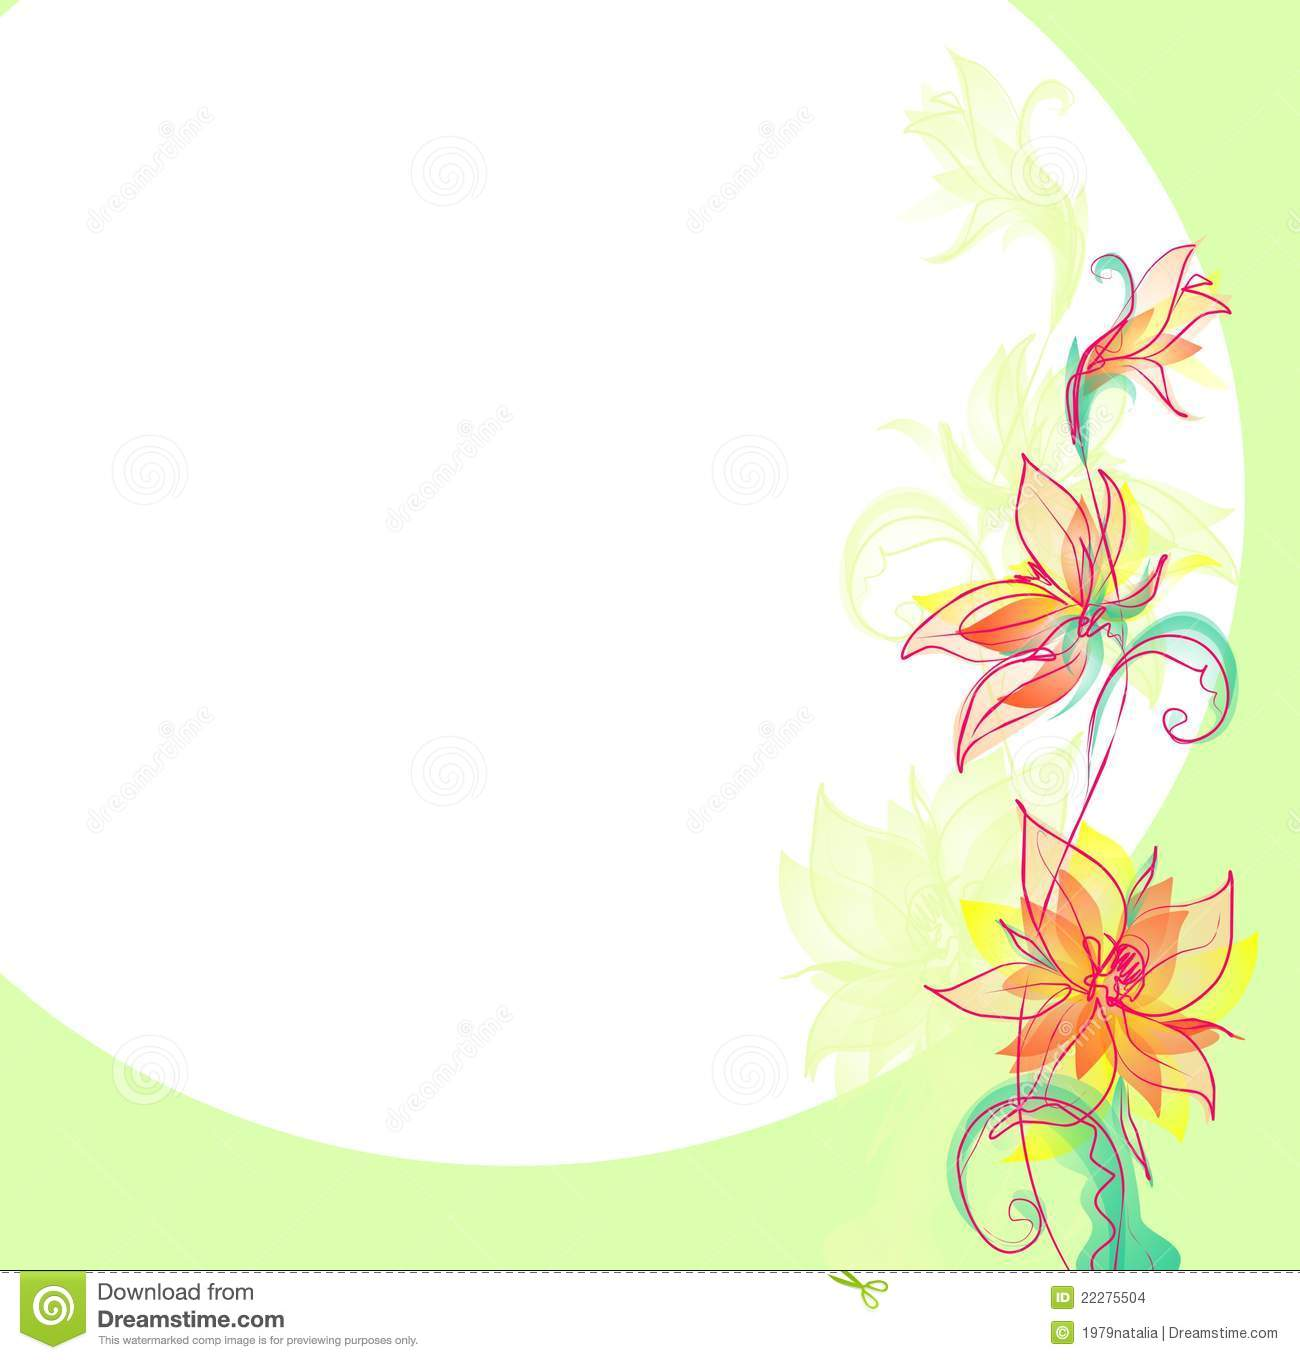 Design Images Beauteous With Simple Flower Designs Images